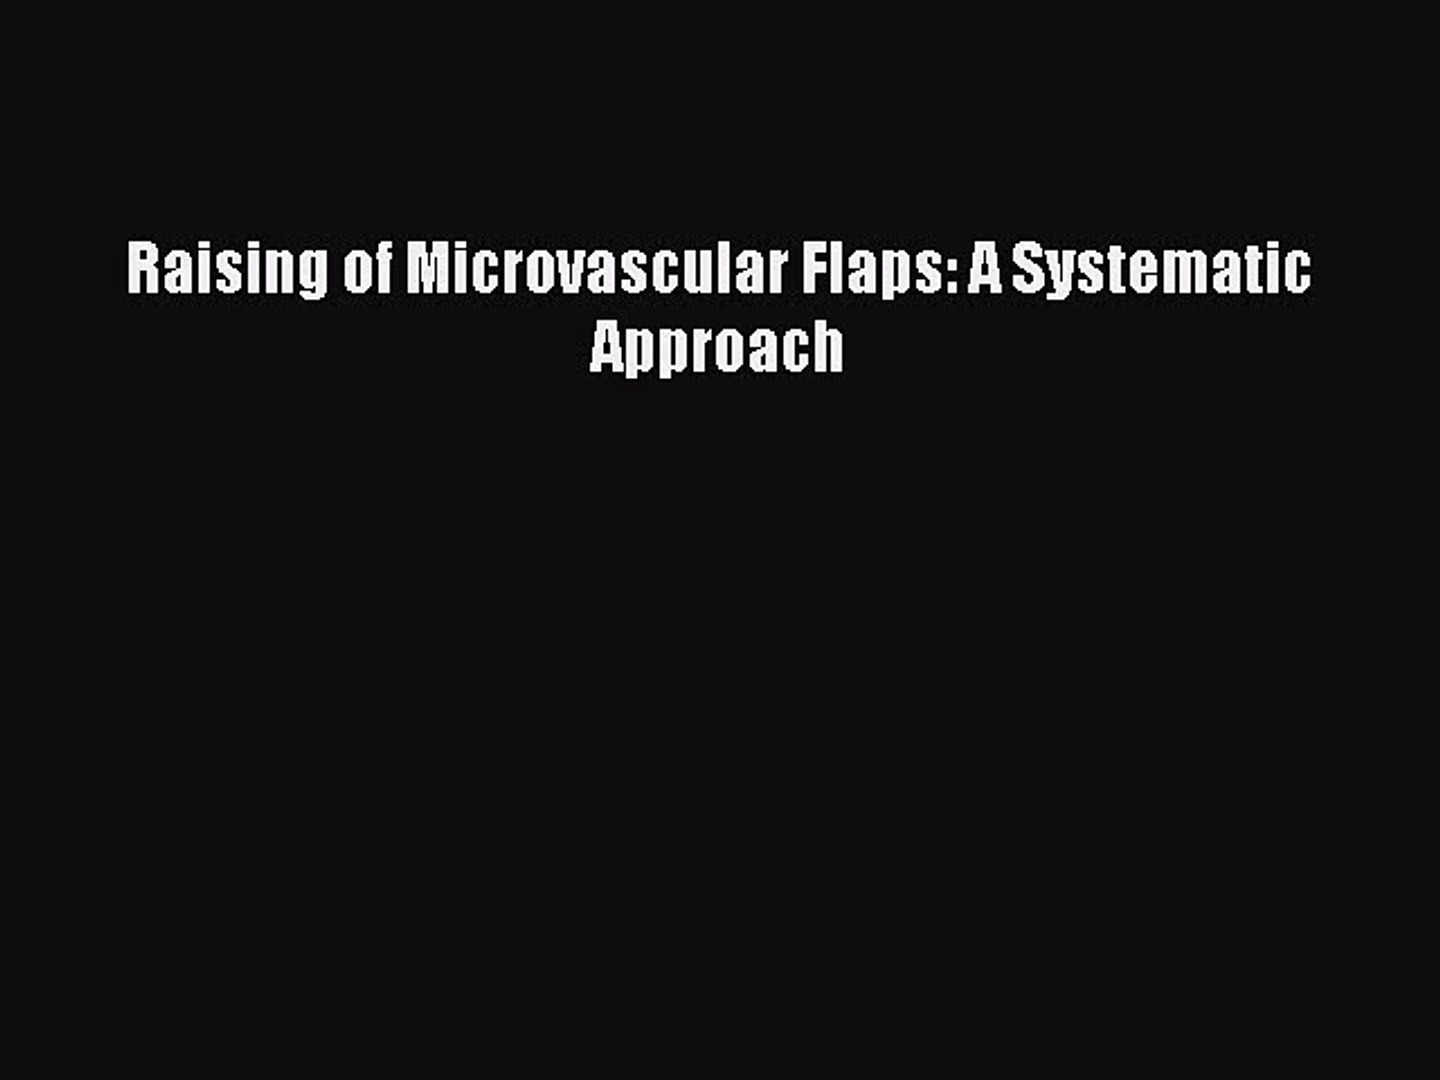 Raising of Microvascular Flaps: A Systematic Approach